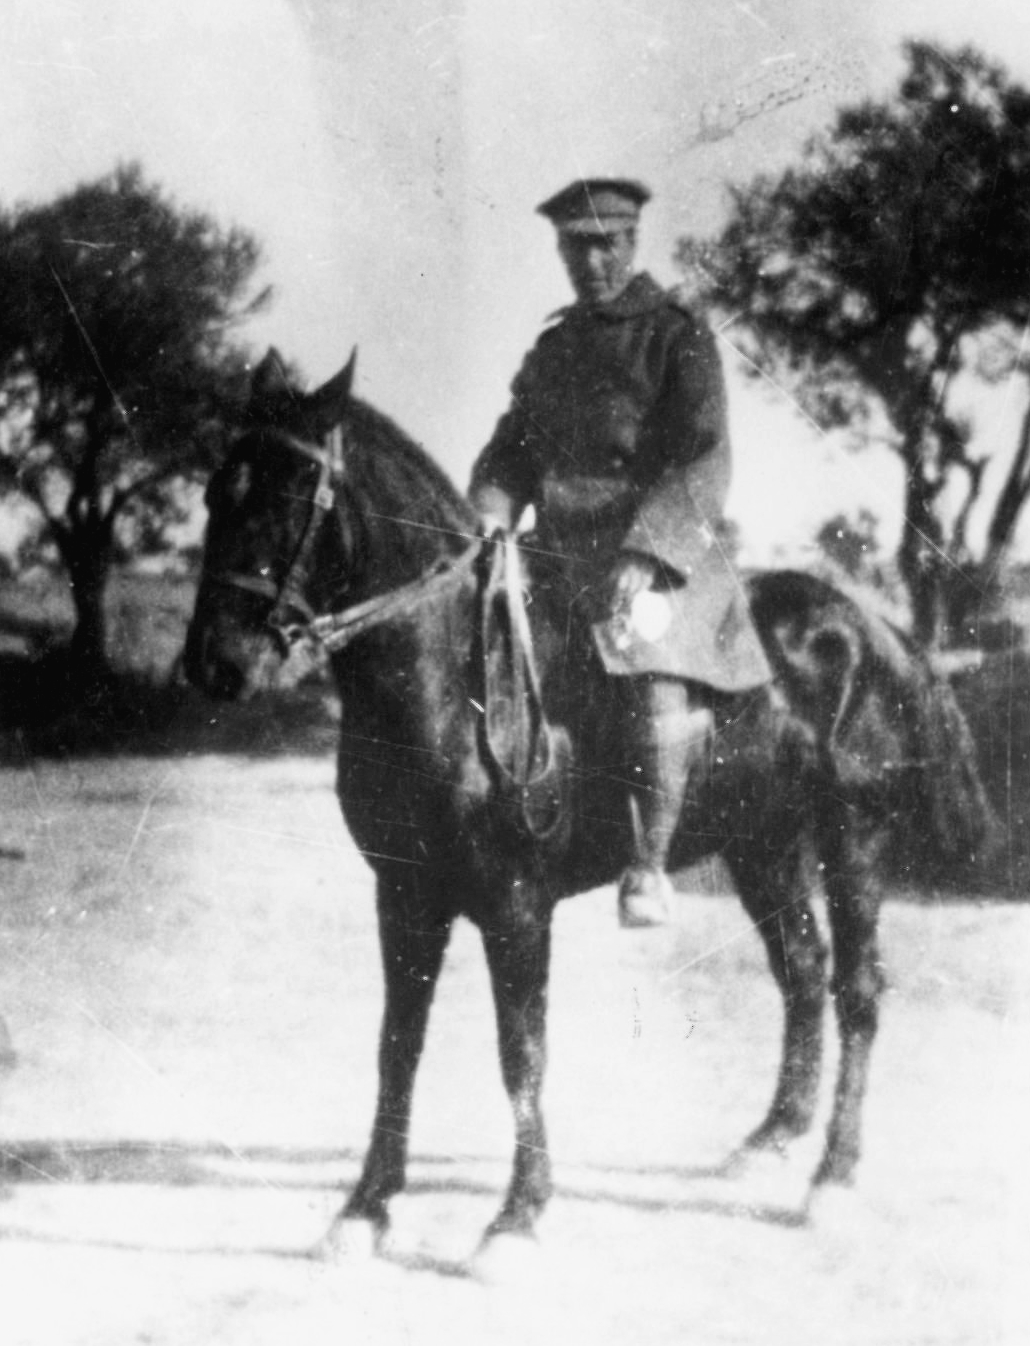 Joseph Trumpeldor in uniform as a Zion Mule Corps officer in Gallipoli.